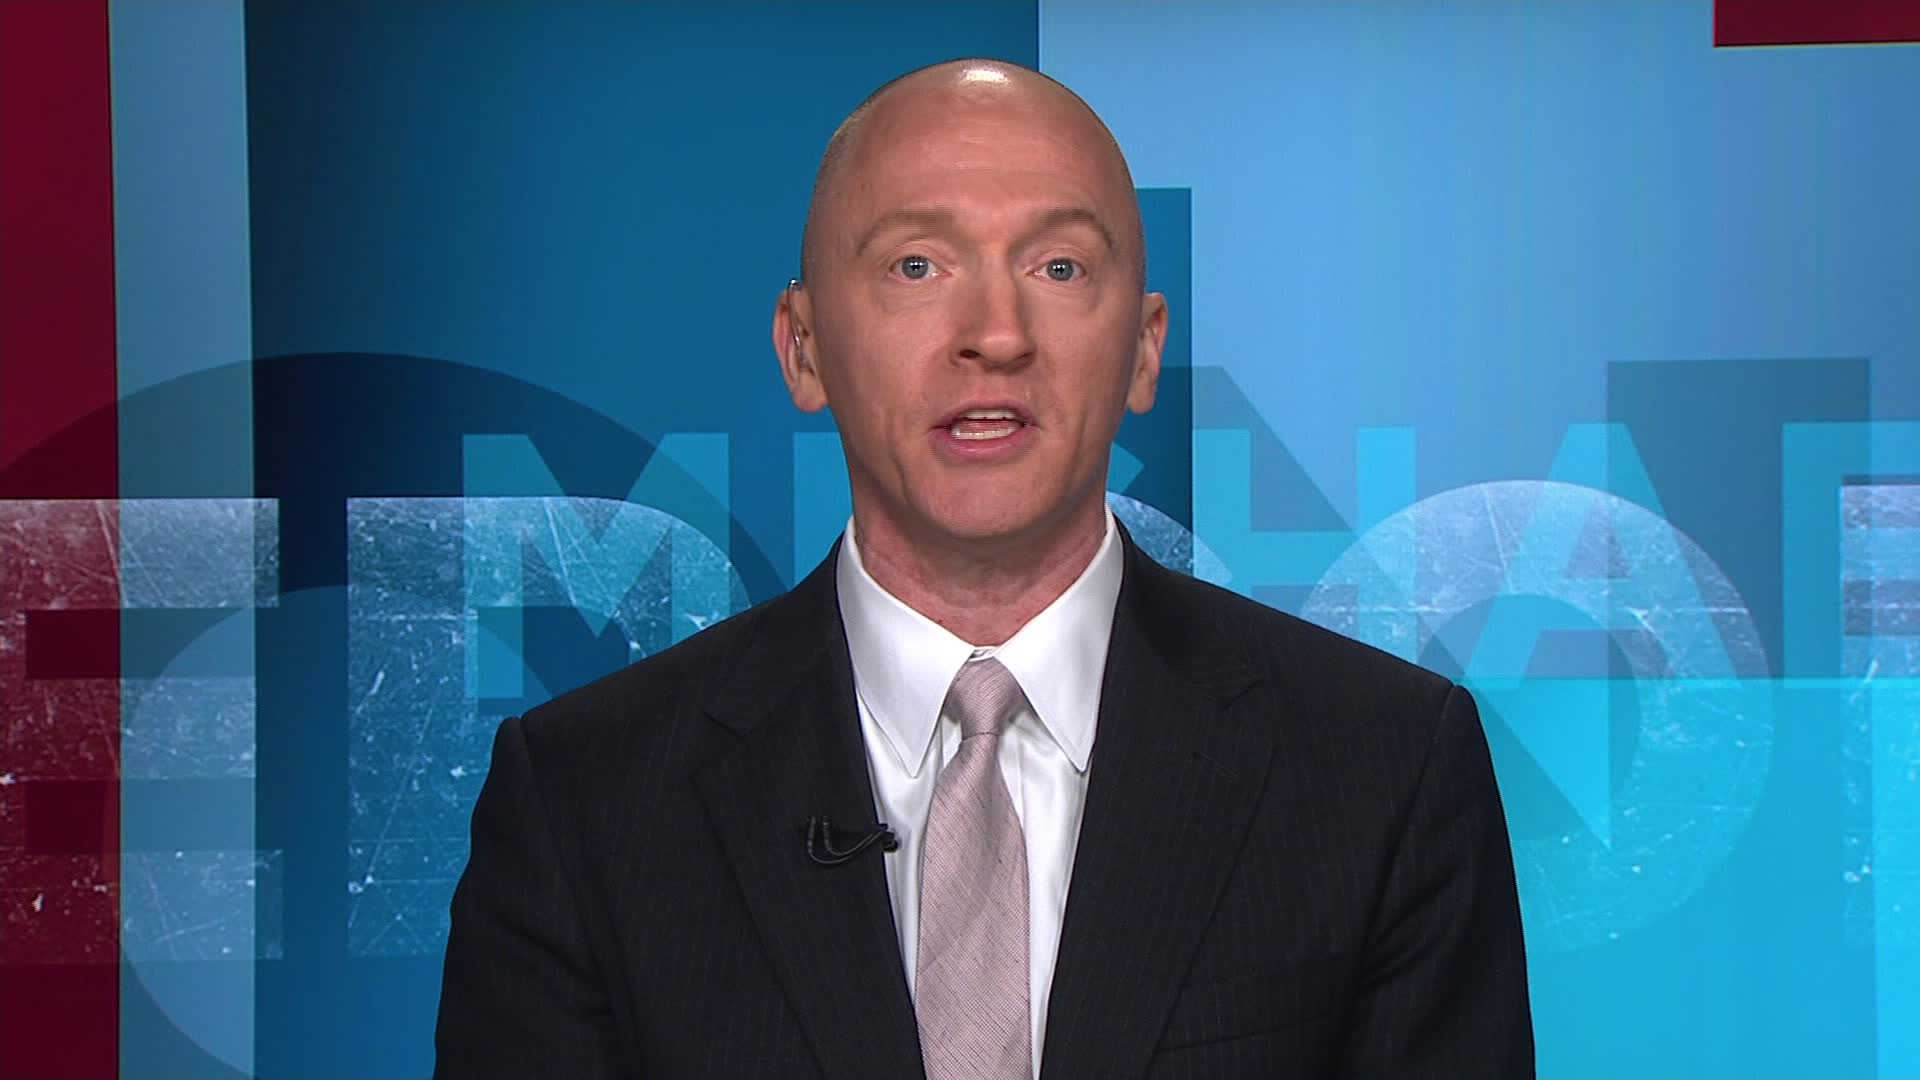 Two of four FISA warrants against Carter Page declared invalid